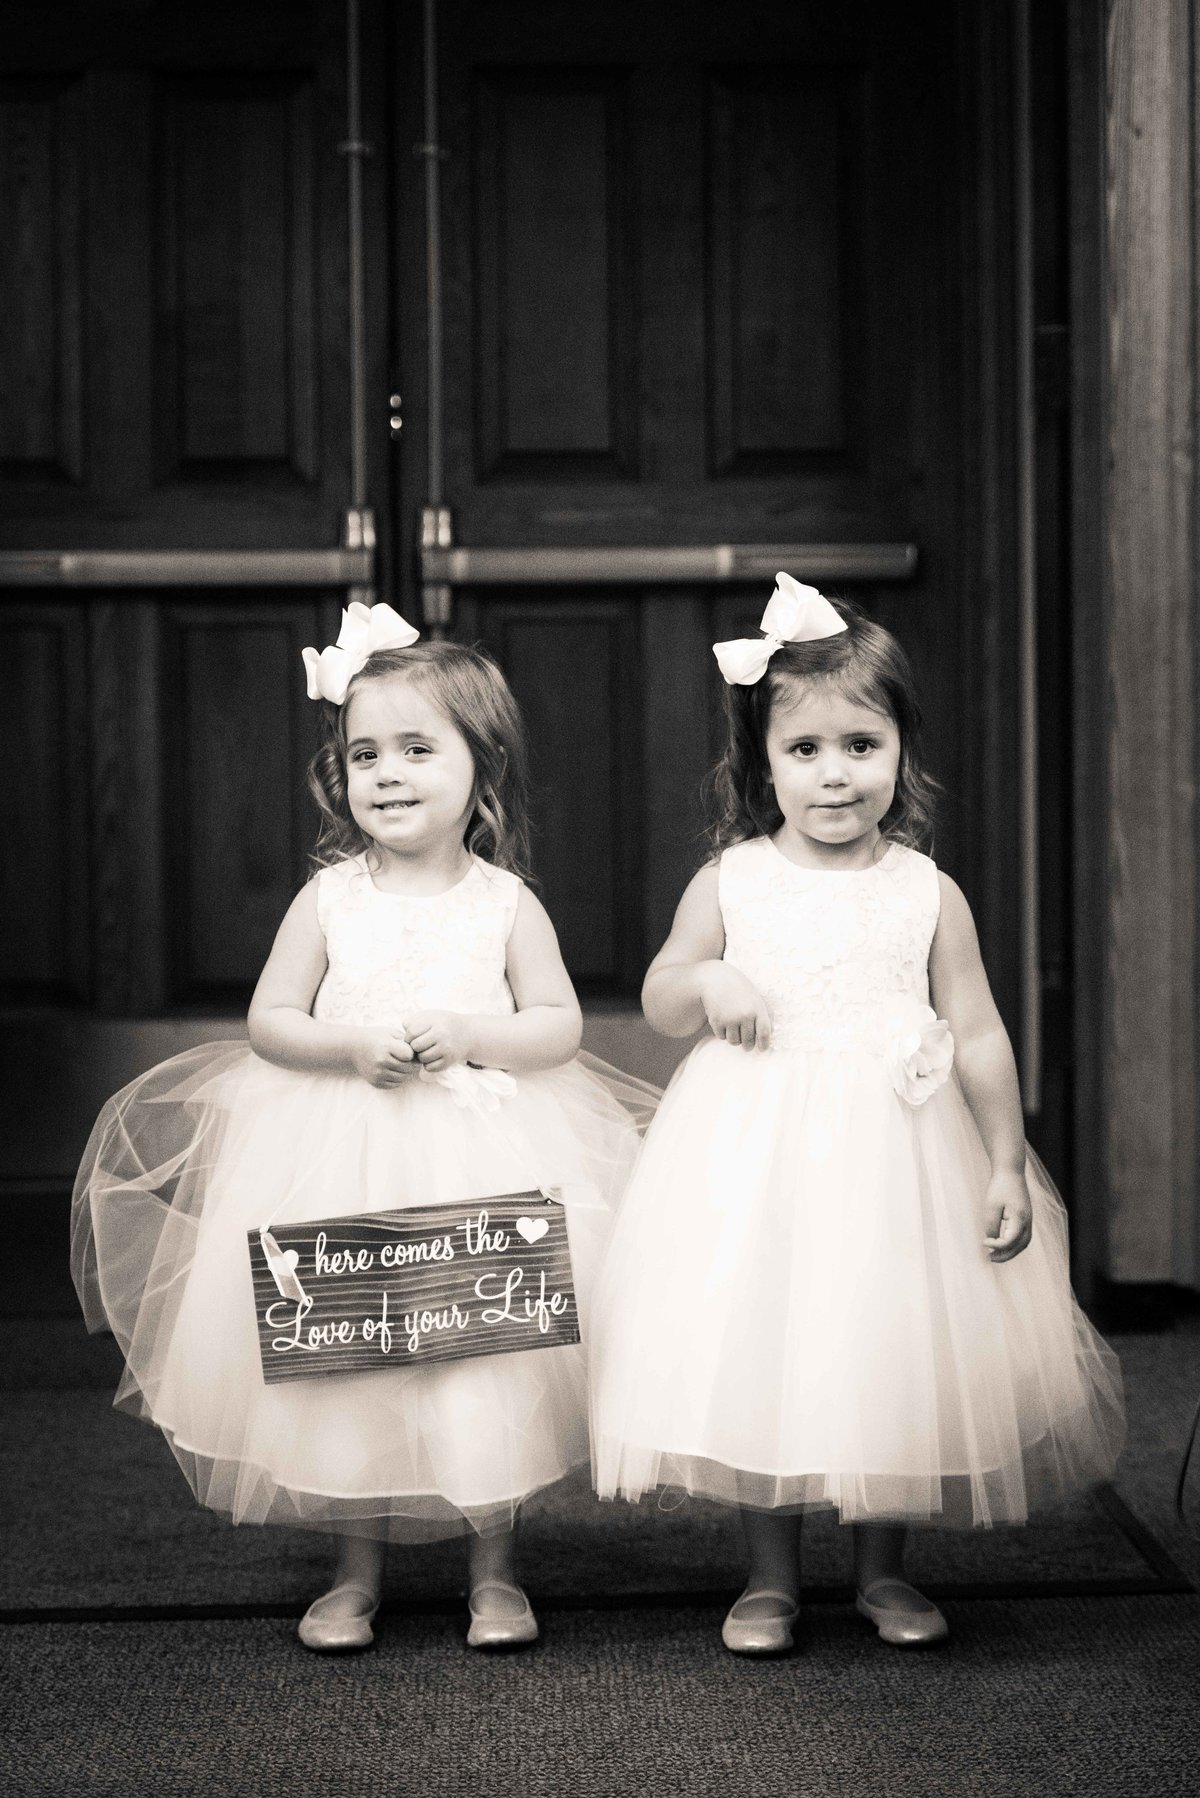 Flower girls prepare for wedding ceremony, Chicago IL.